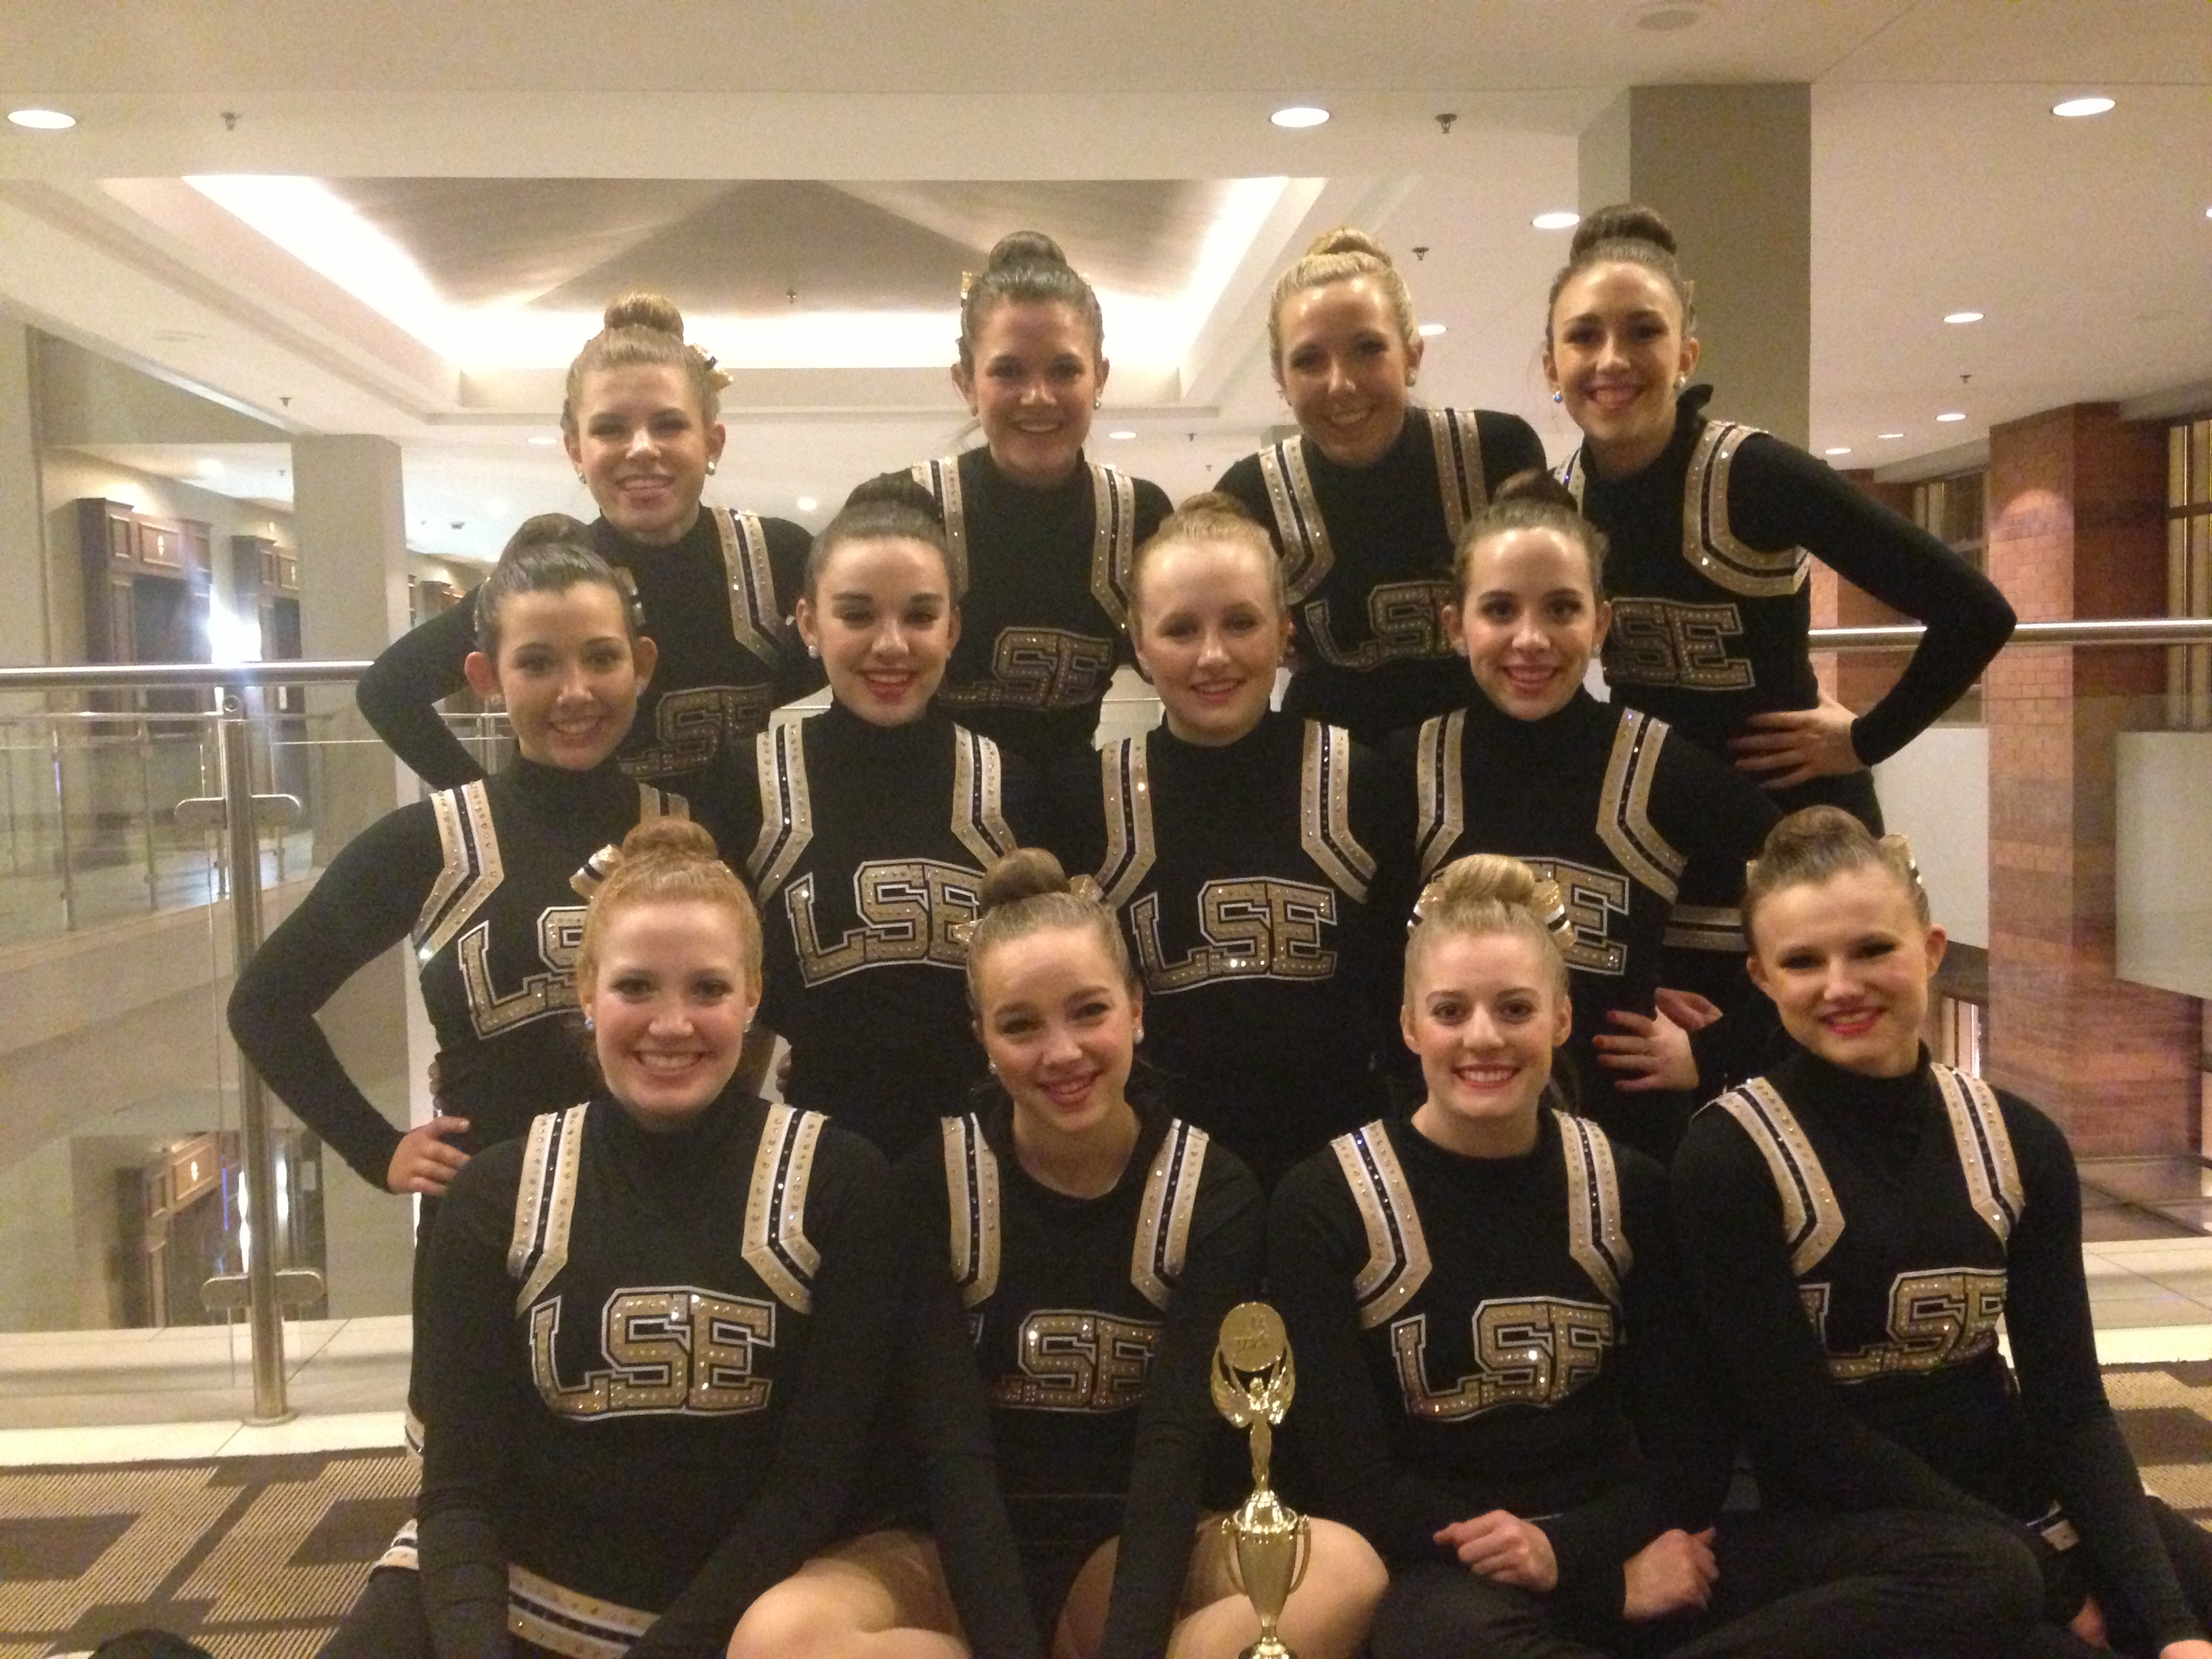 Shirettes at competition in Chicago in January 2014.